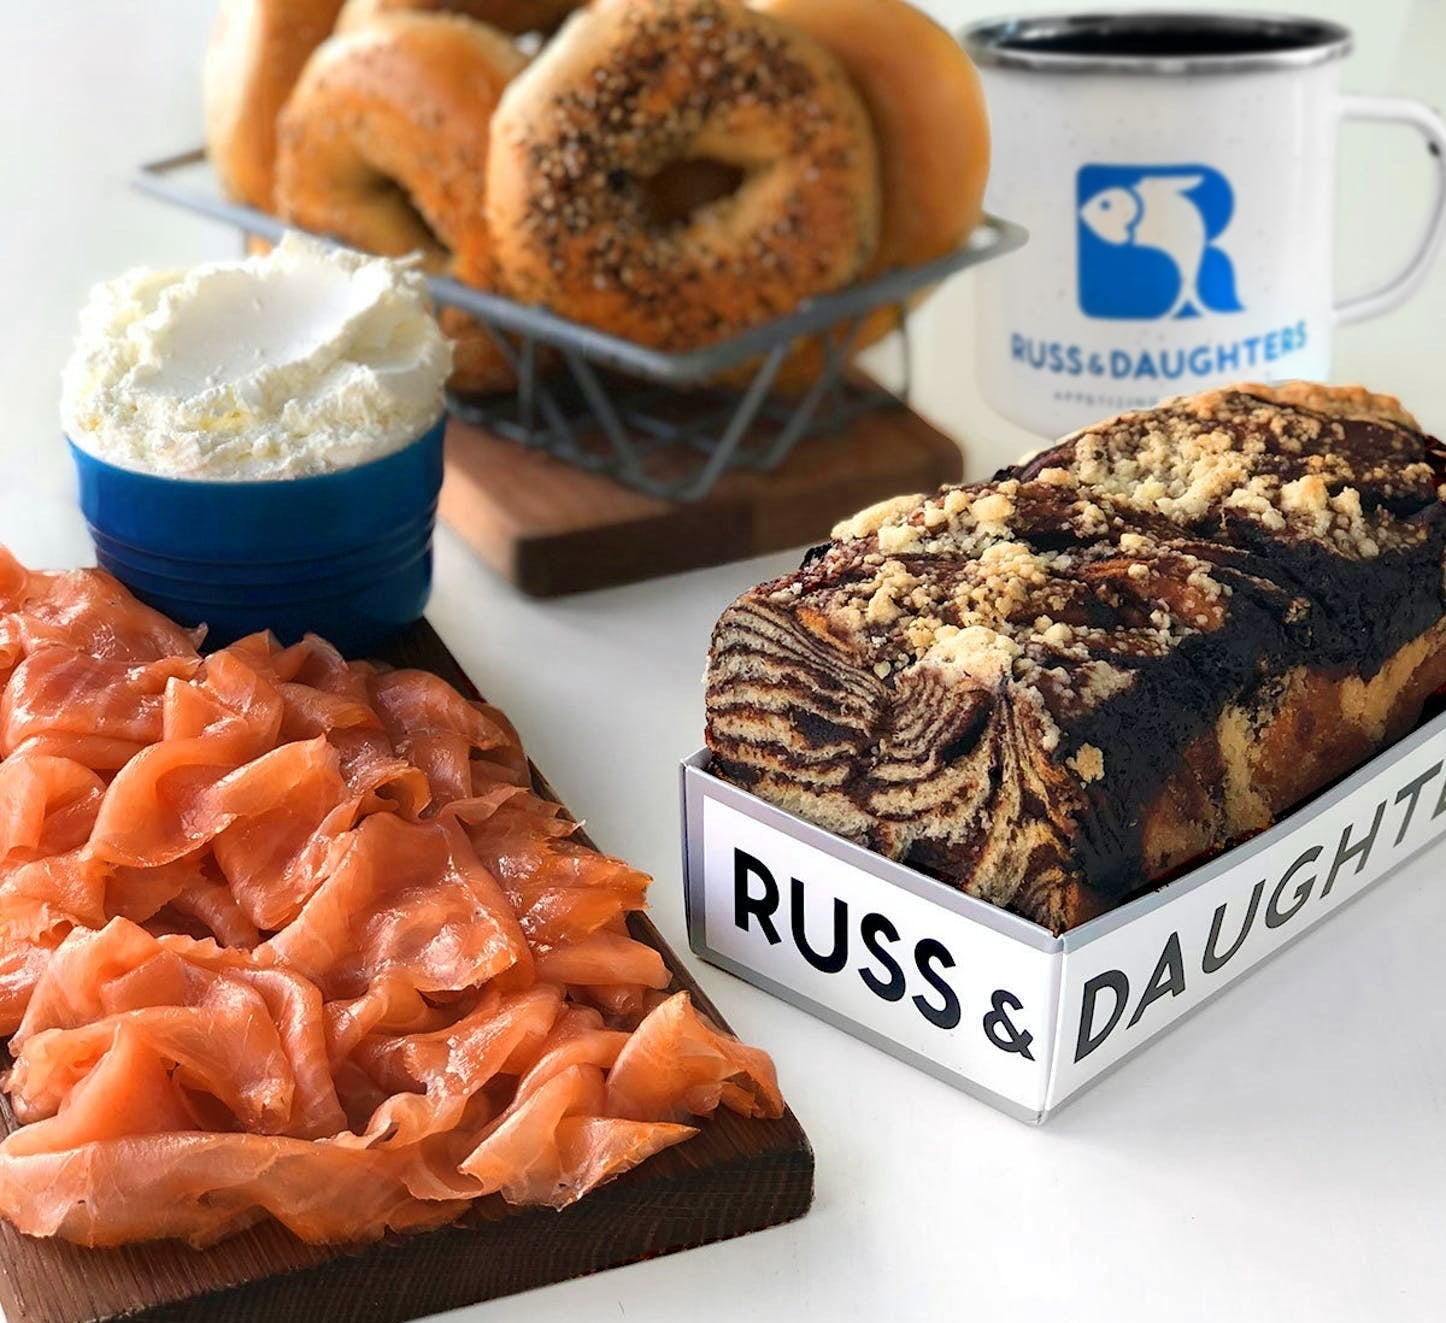 assortment of lox, bagels, cream cheese, coffee, and chocolate babka